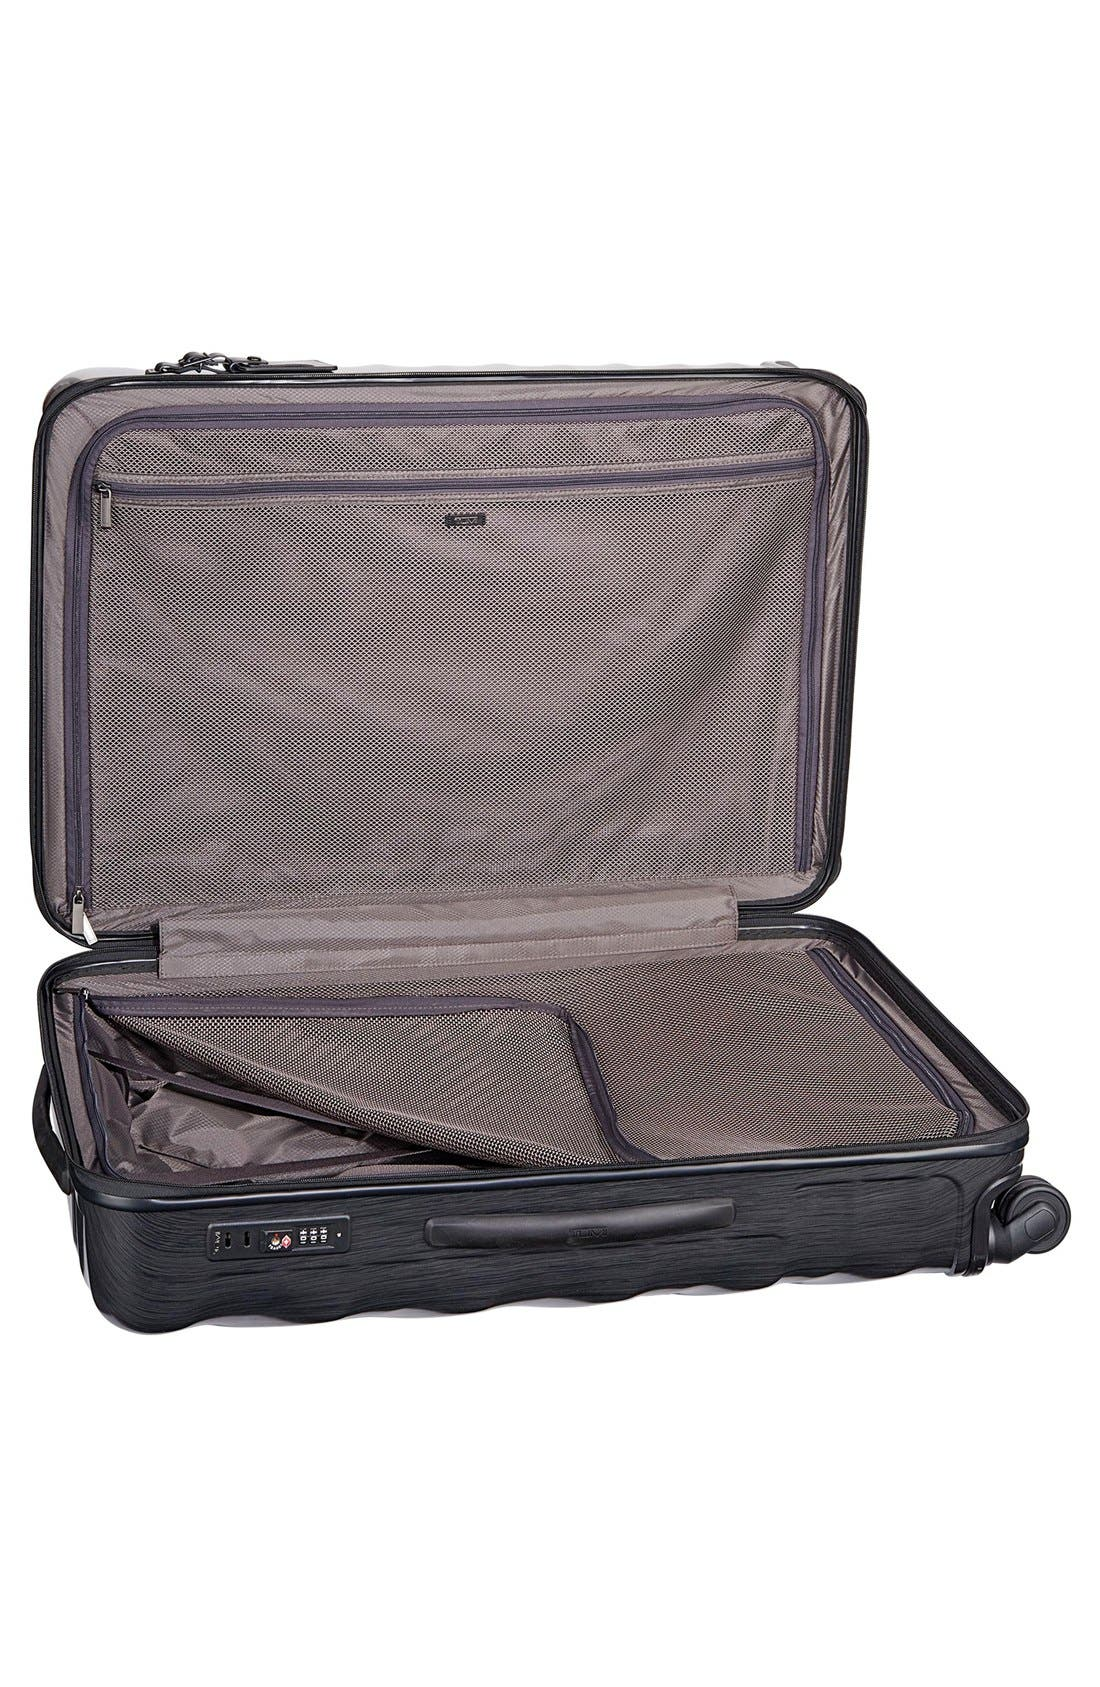 19 Degree 30 Inch Extended Trip Wheeled Packing Case,                             Alternate thumbnail 3, color,                             001